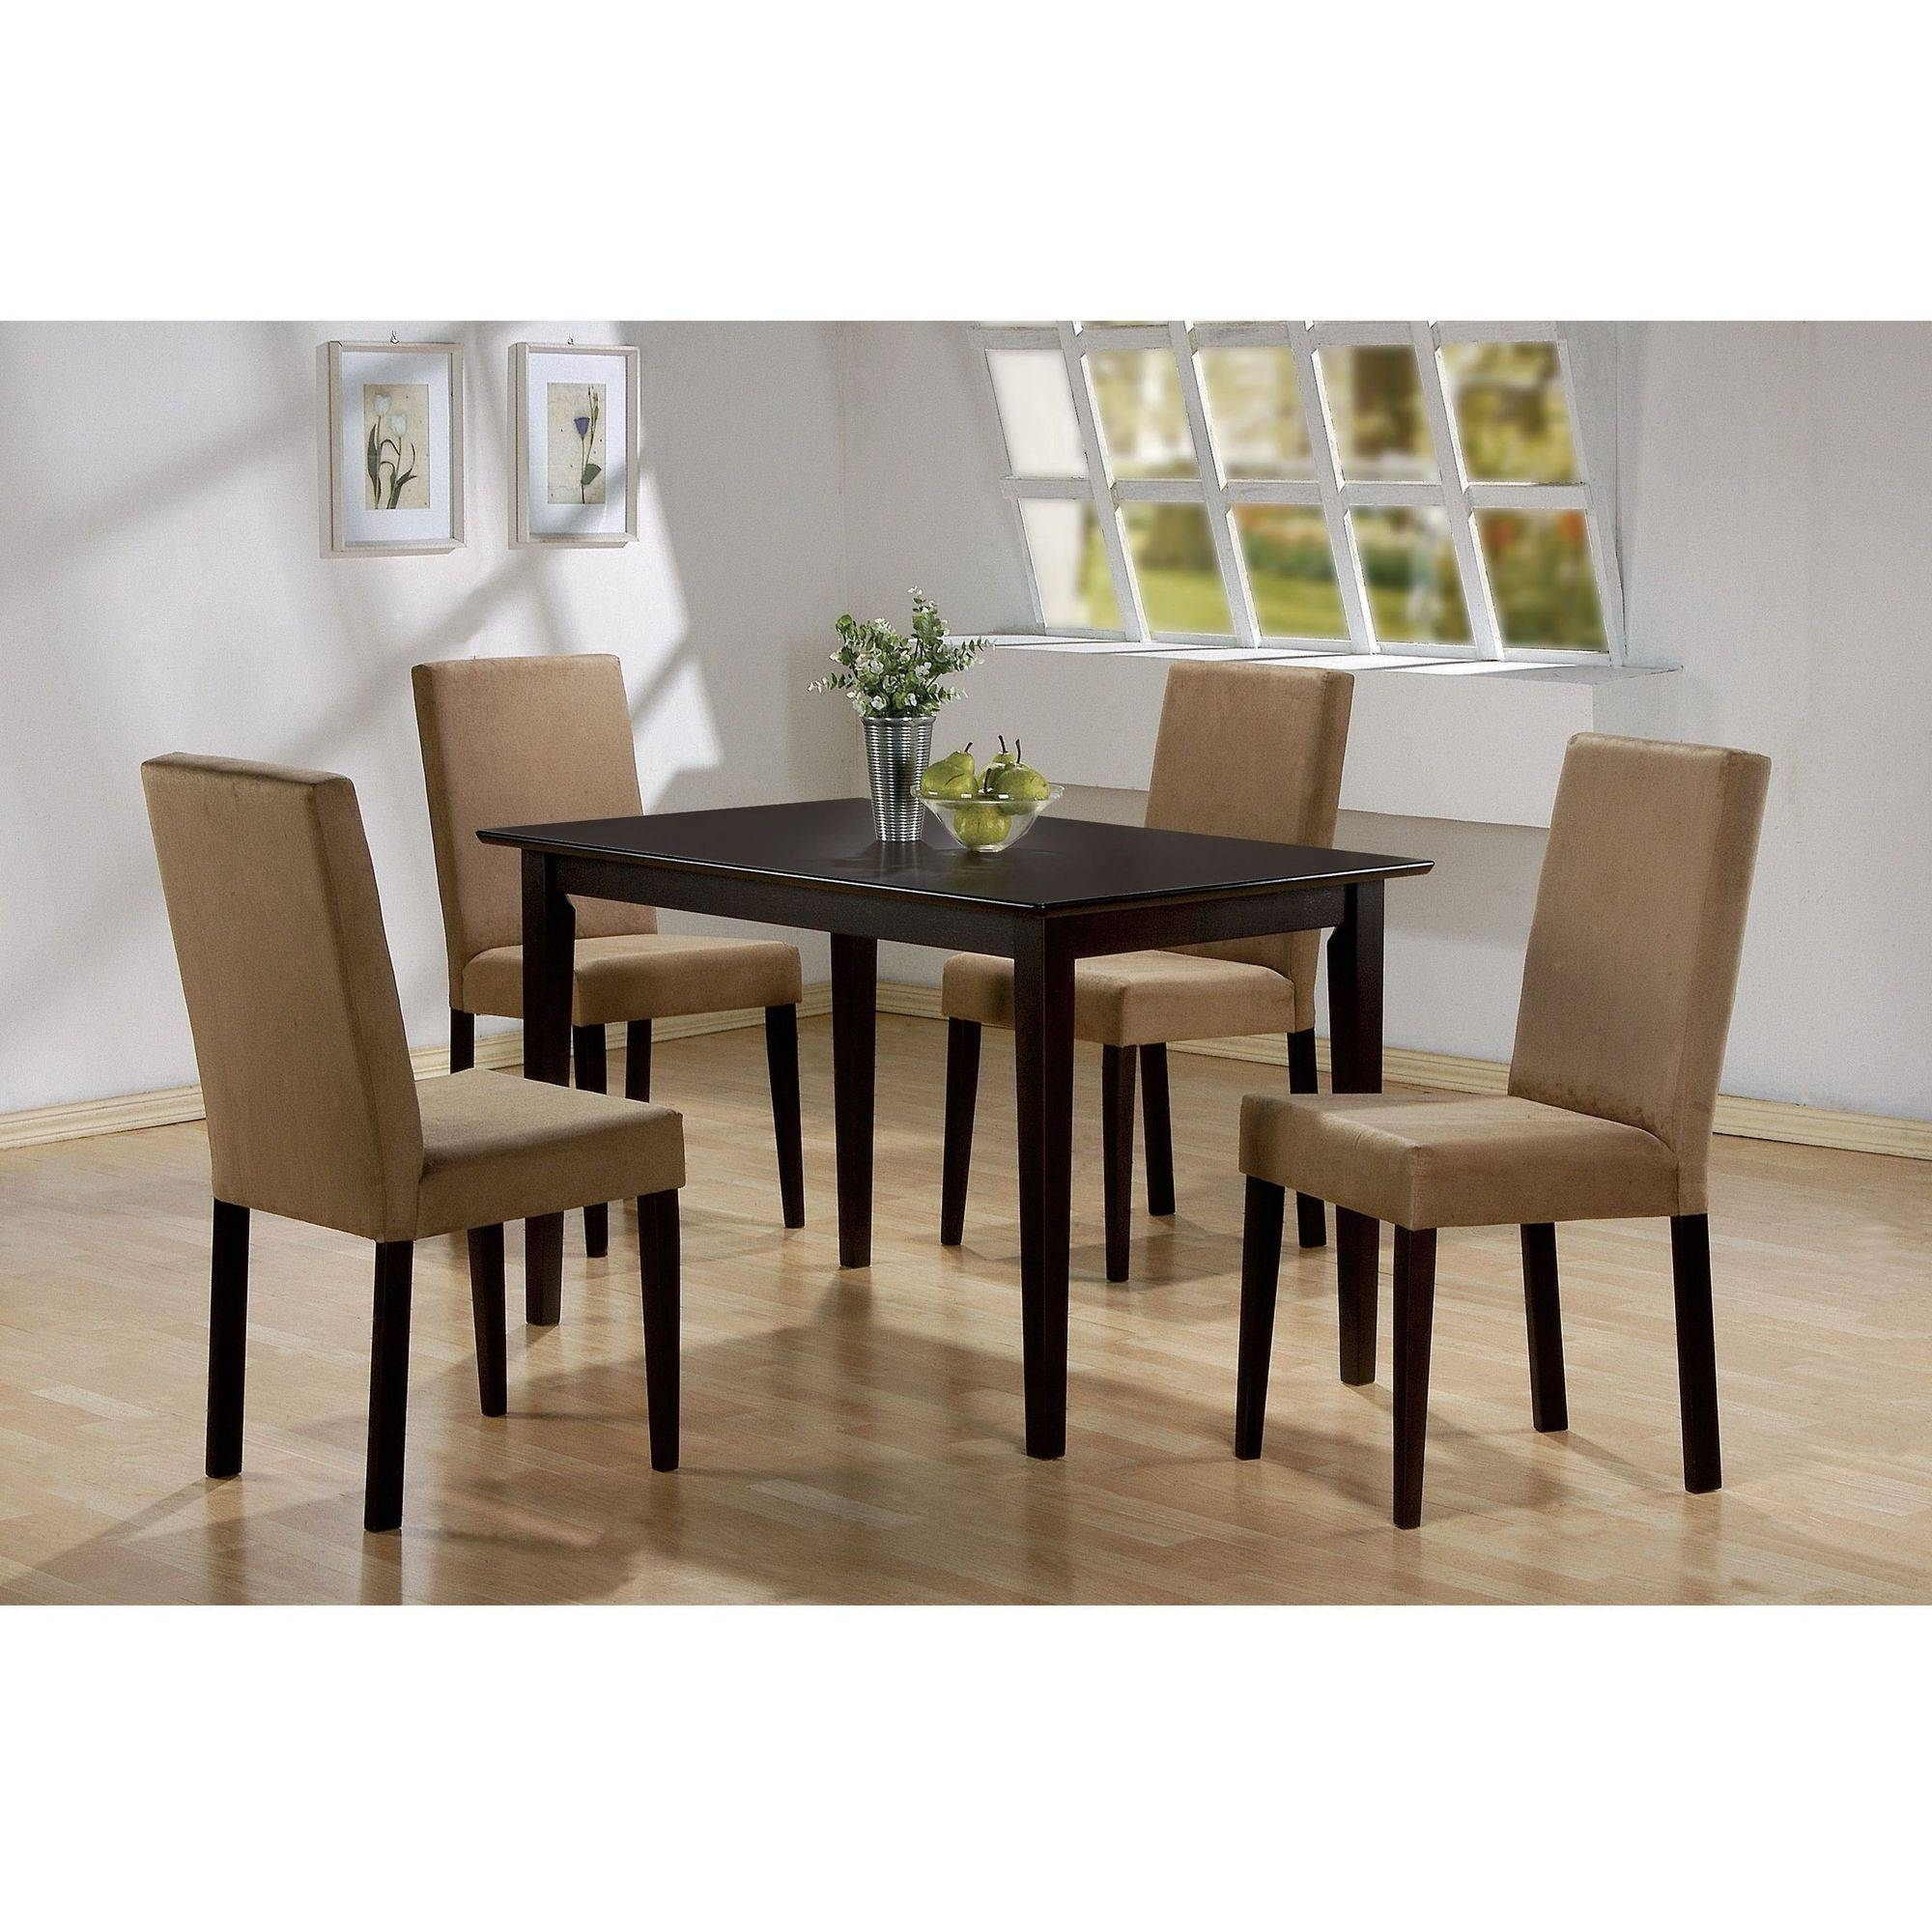 Fashionable Cheap Dining Tables And Chairs In Coaster Company Clayton Dining Table, Chairs Sold Separately (View 12 of 25)